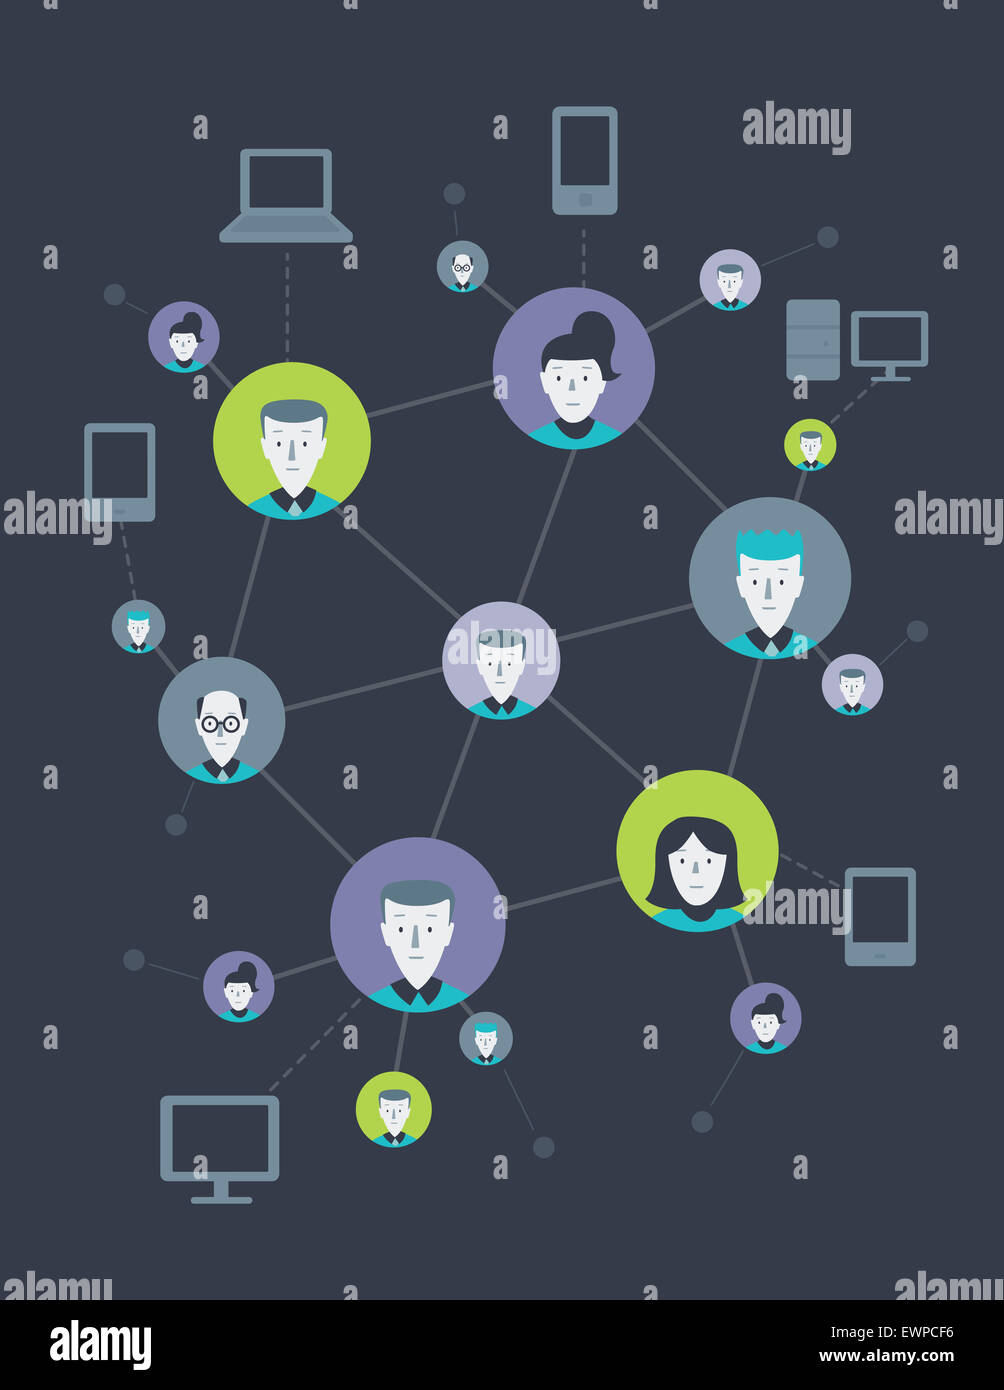 Illustrative image of people connected with each other representing social networking - Stock Image